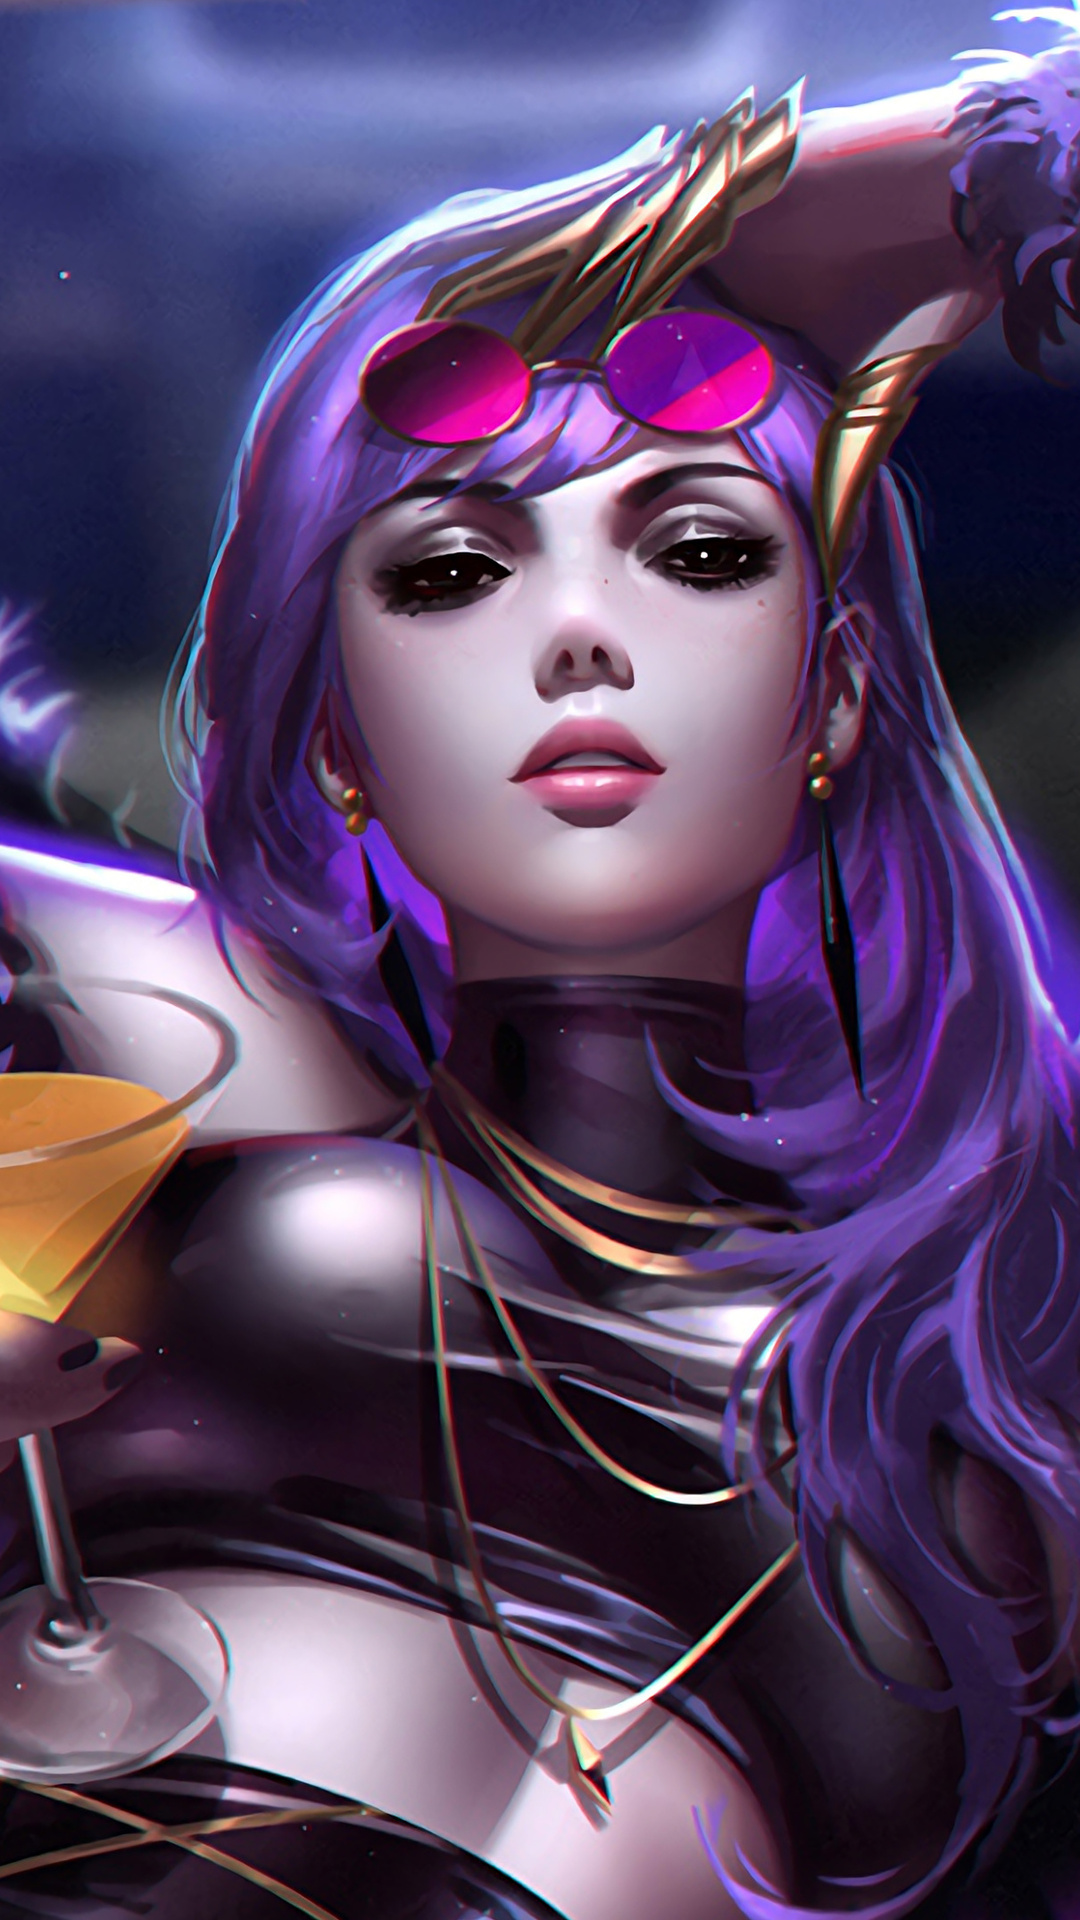 kda-evelynn-lol-yb.jpg